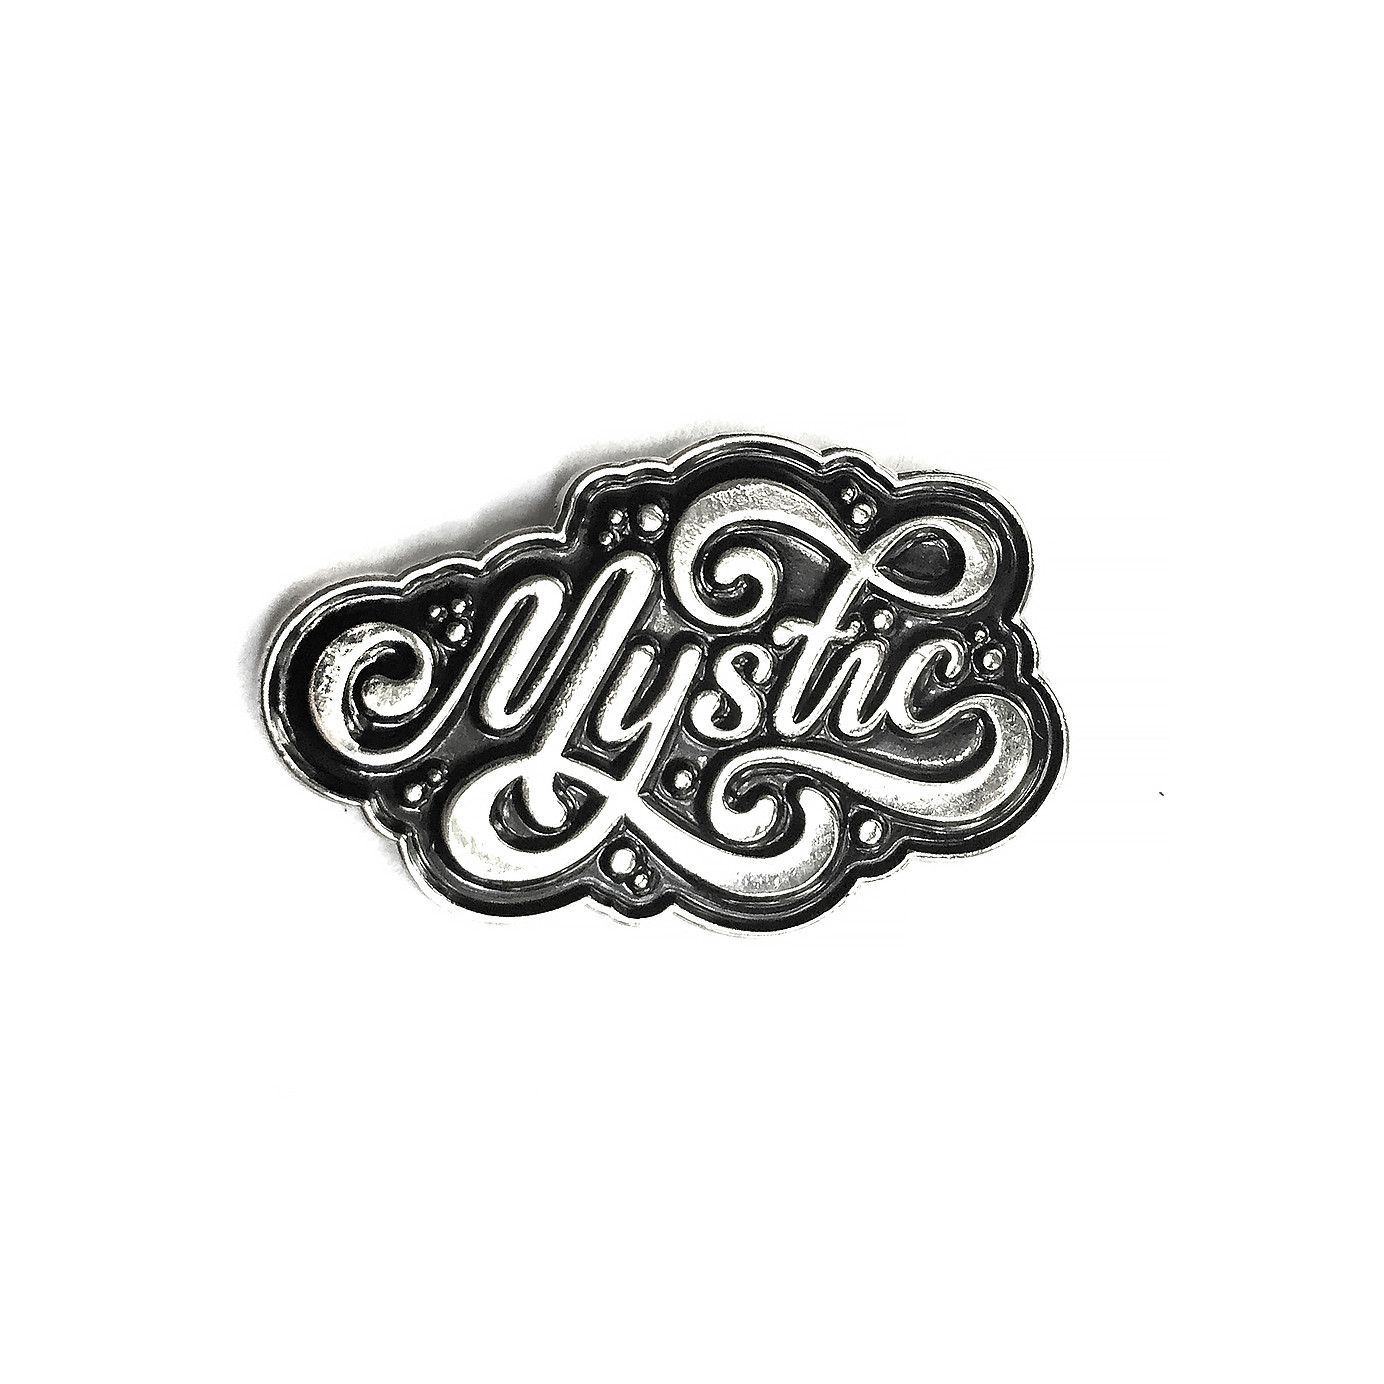 Mystic silver and company - Mystic Pin